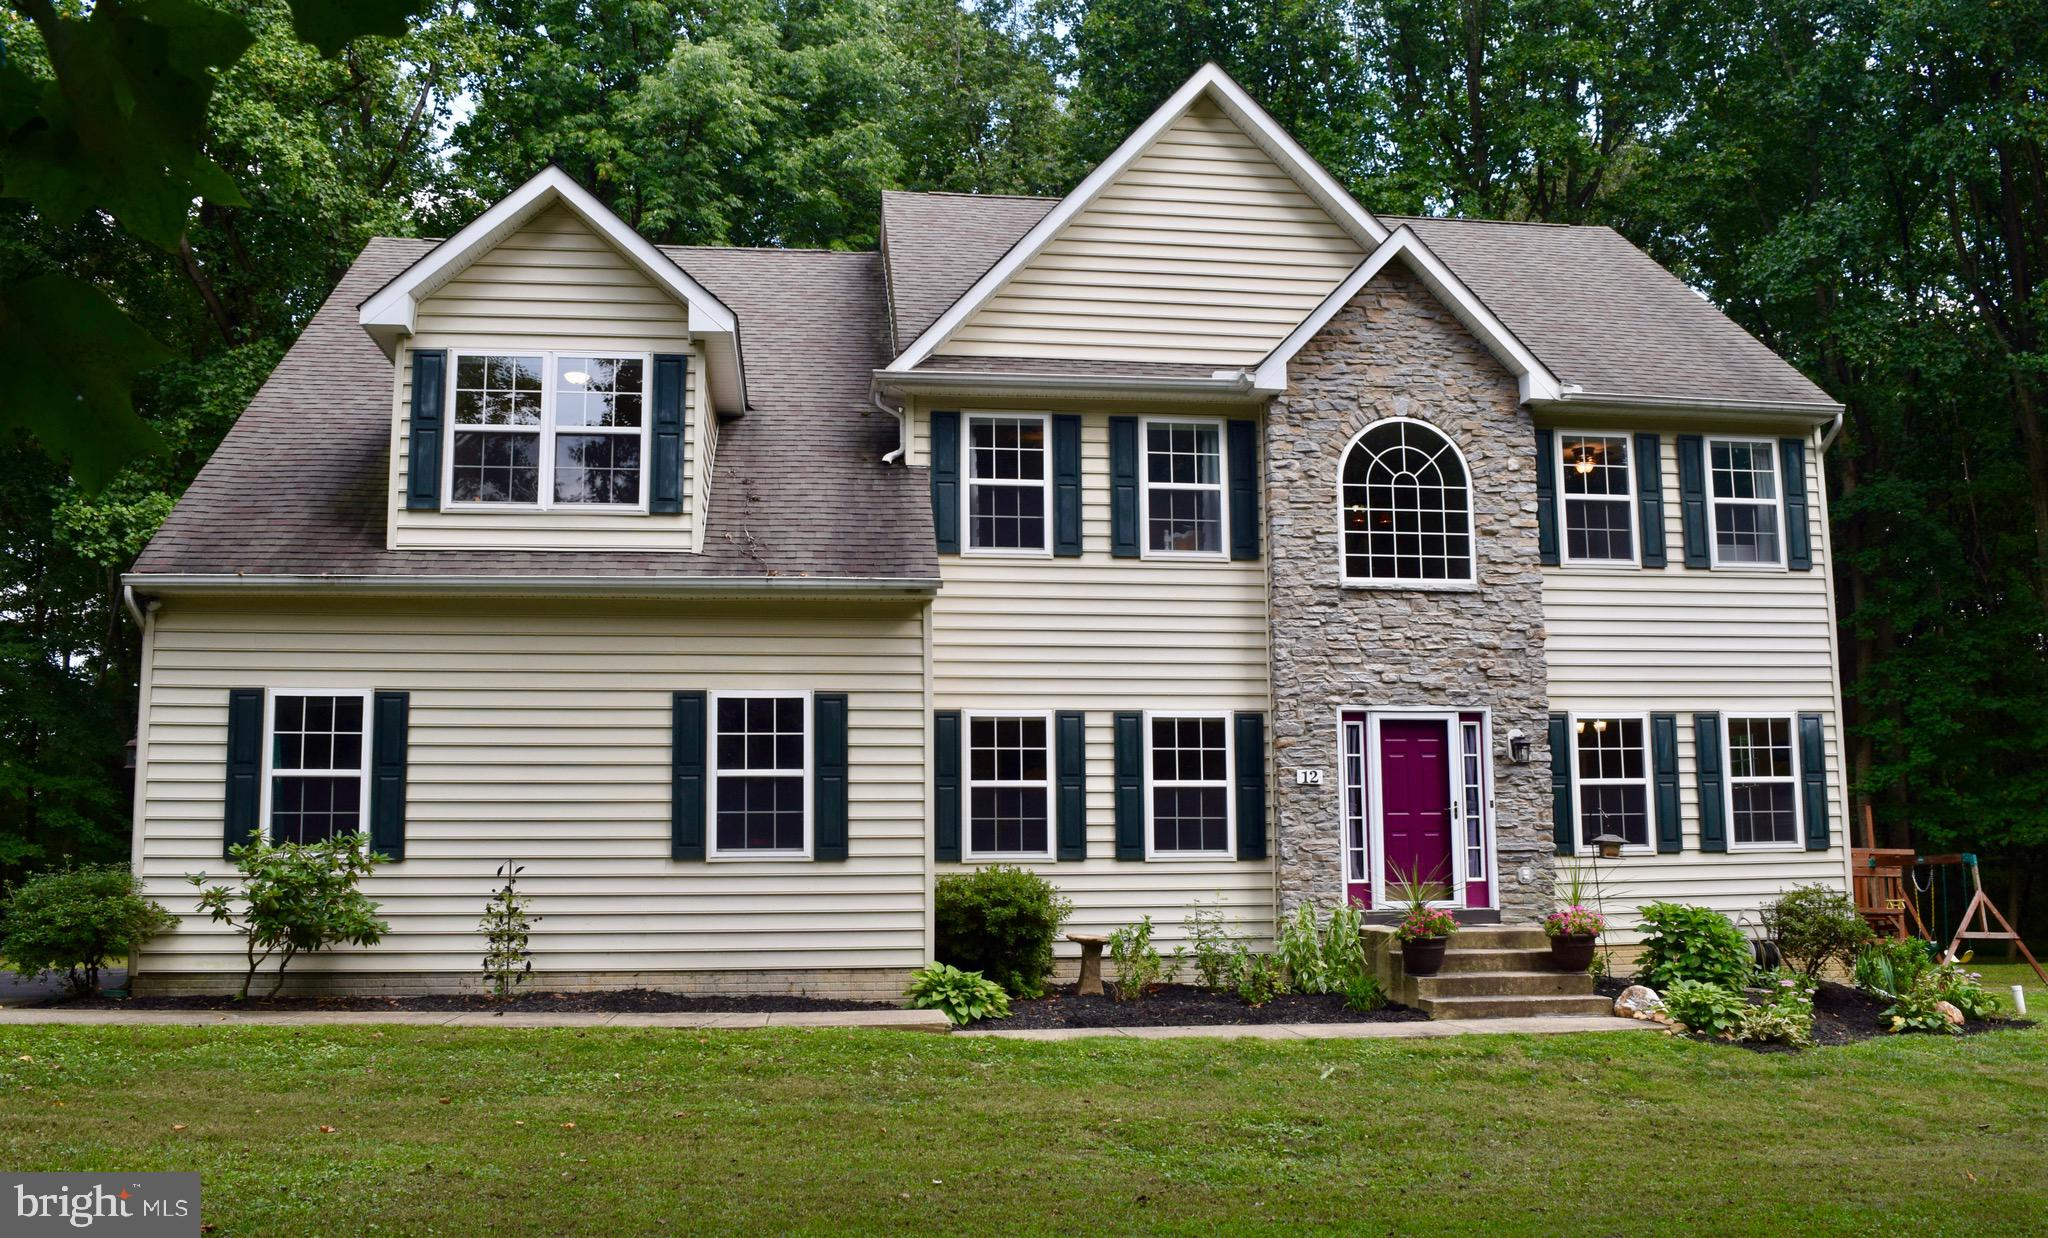 12 CANTERBURY COURT, COLORA, MD 21917